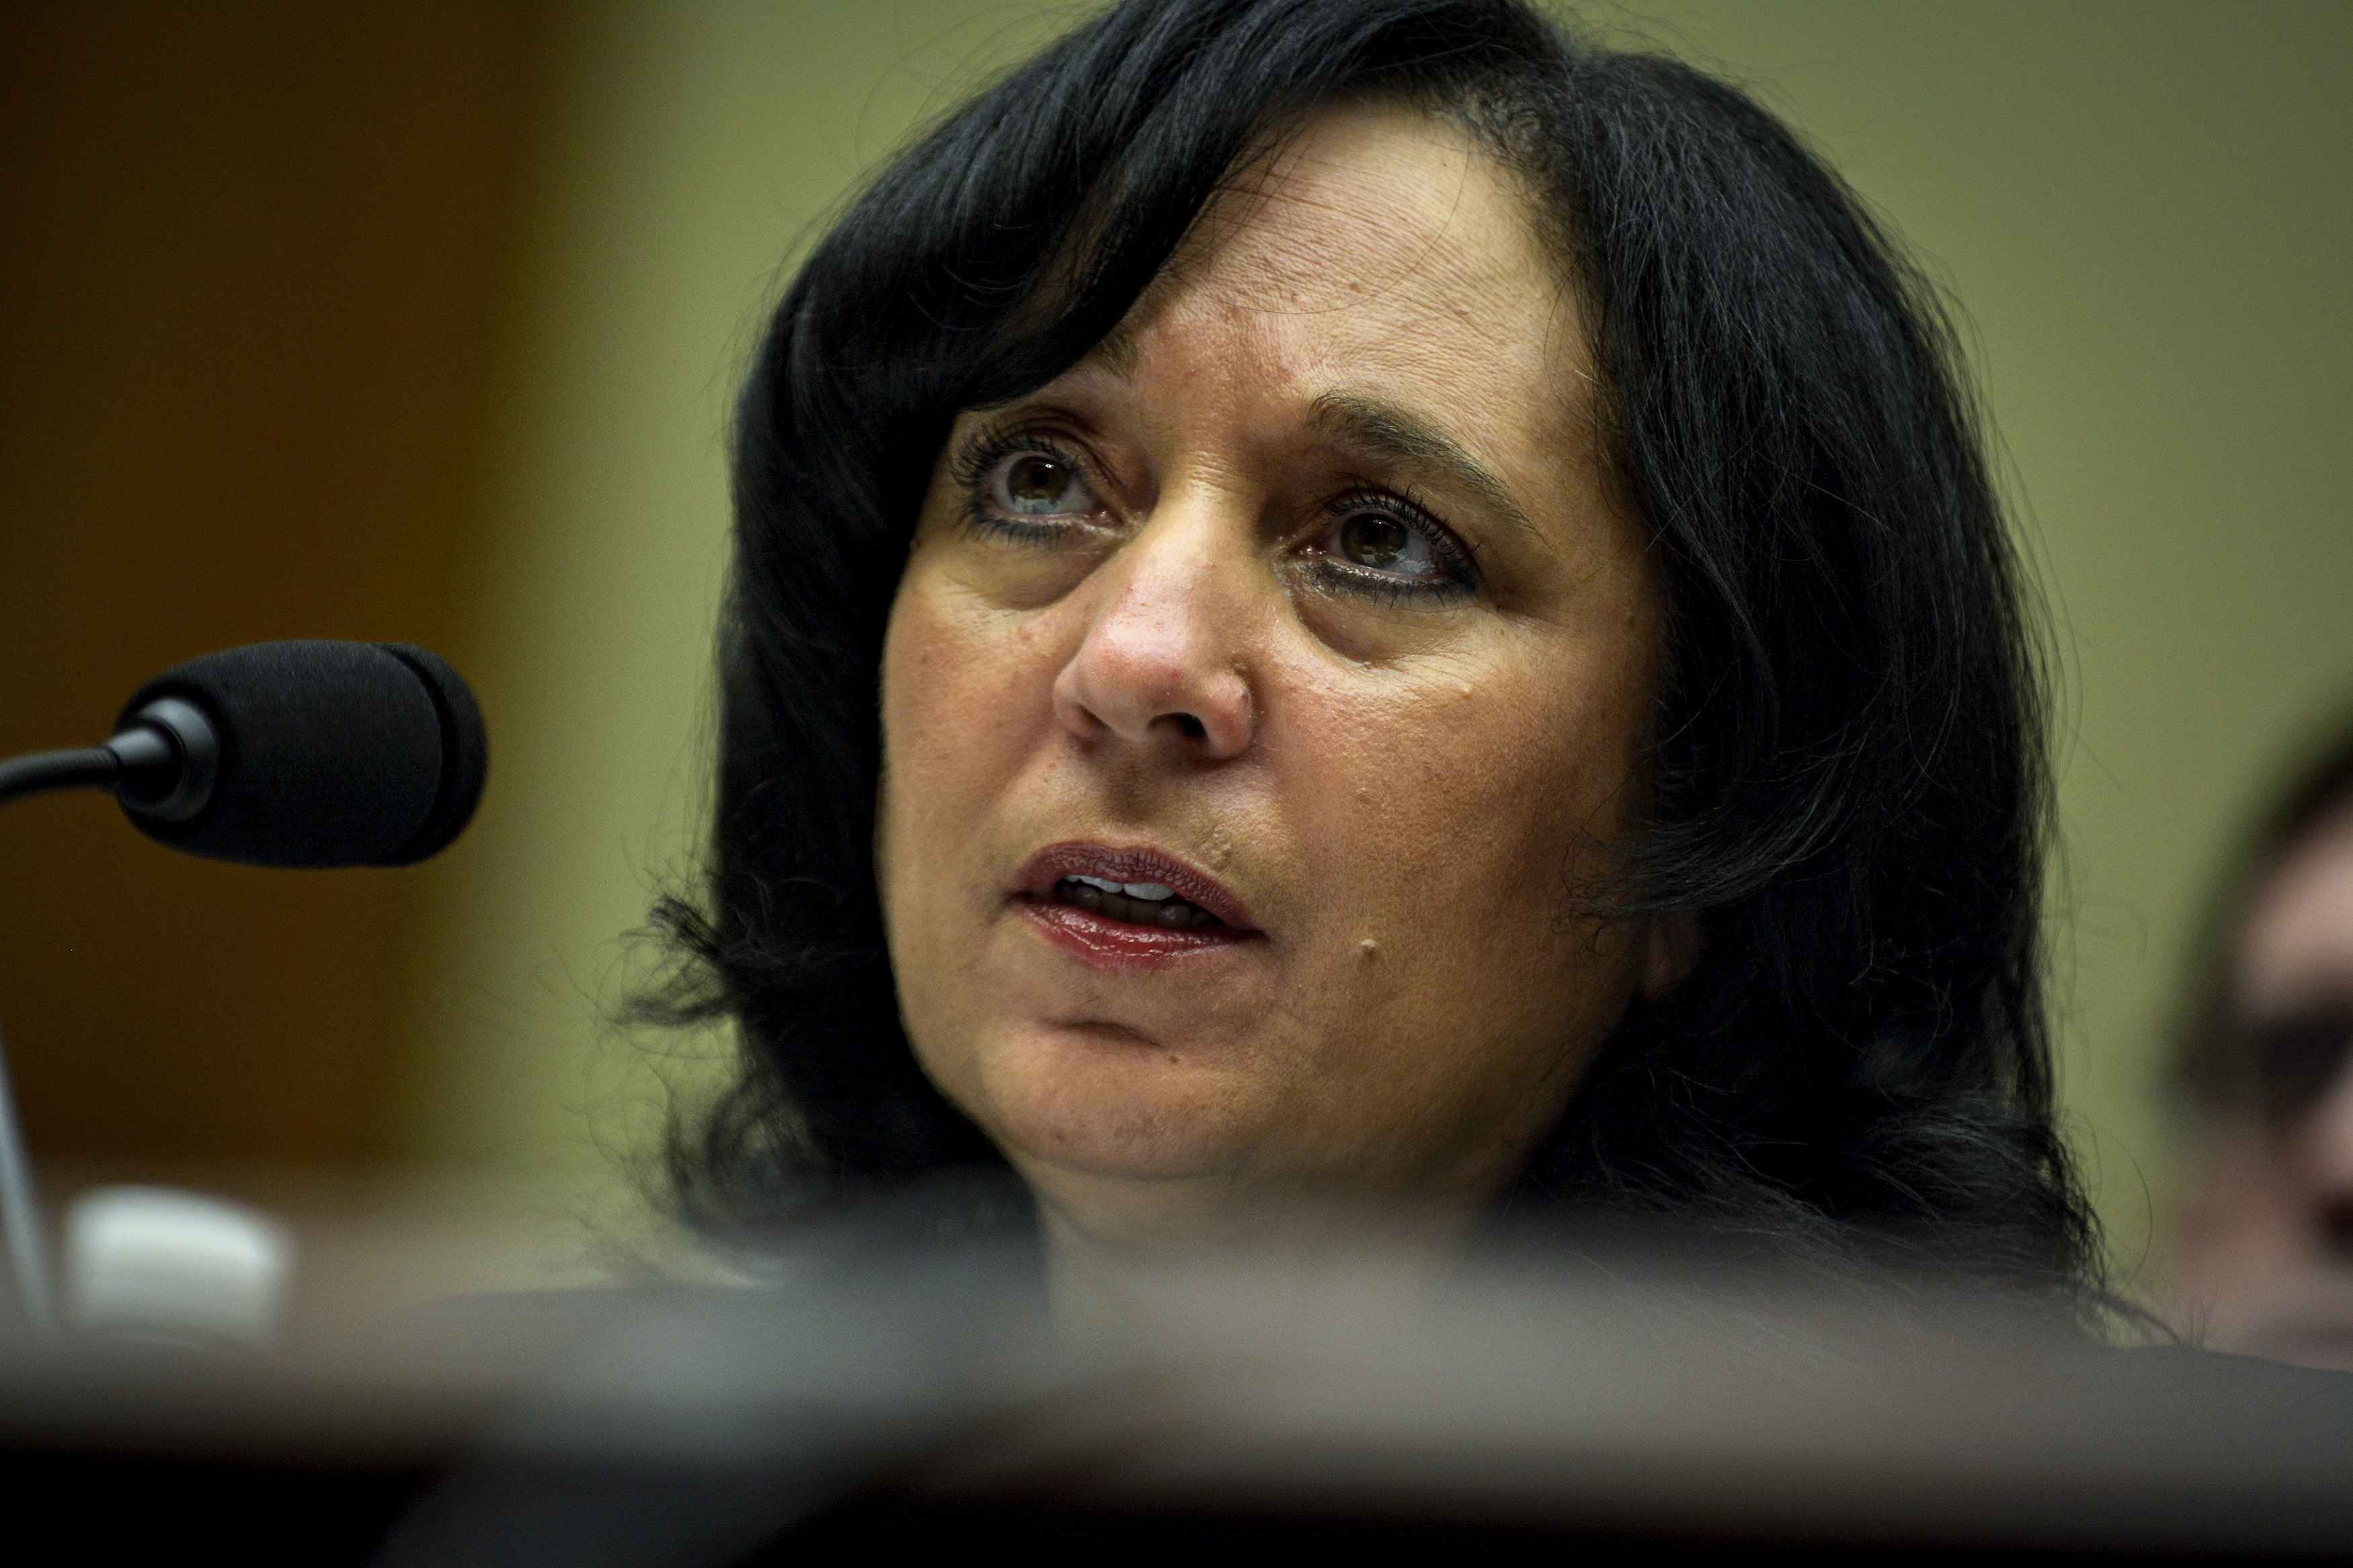 DEA administrator Michele Leonhart testifies before the House Committee on Oversight and Government Reform in a hearing on sexual harassment and misconduct allegations at the DEA and FBI in Washington on April 14, 2015.